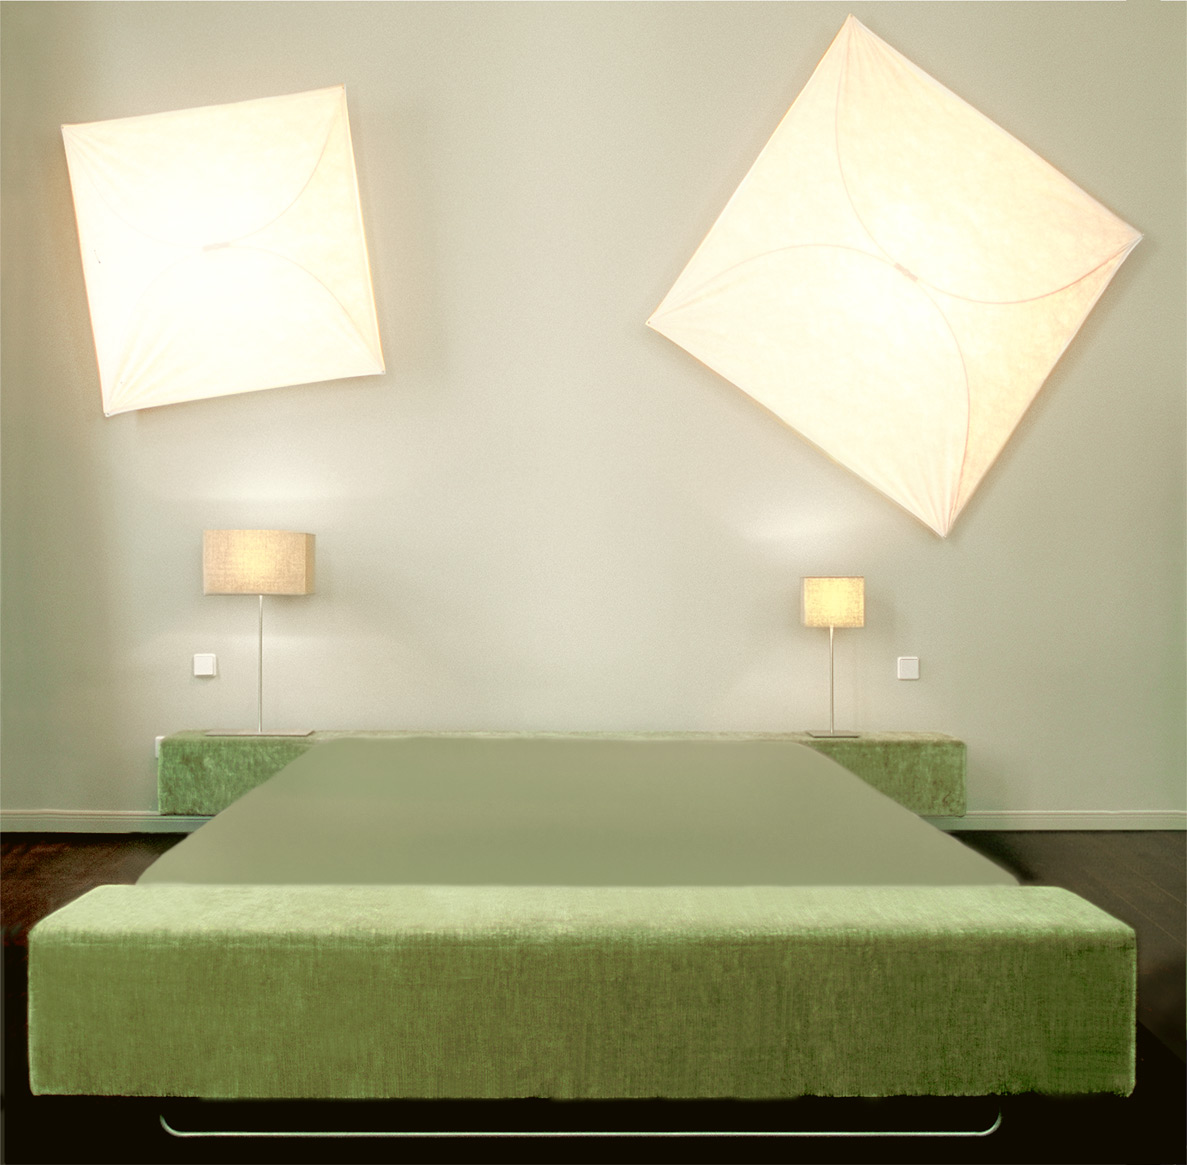 Wall-mounted Ariette lamps, designed in 1973 by Tobia Scarpa. Bed and wardrobe by Cappellini.